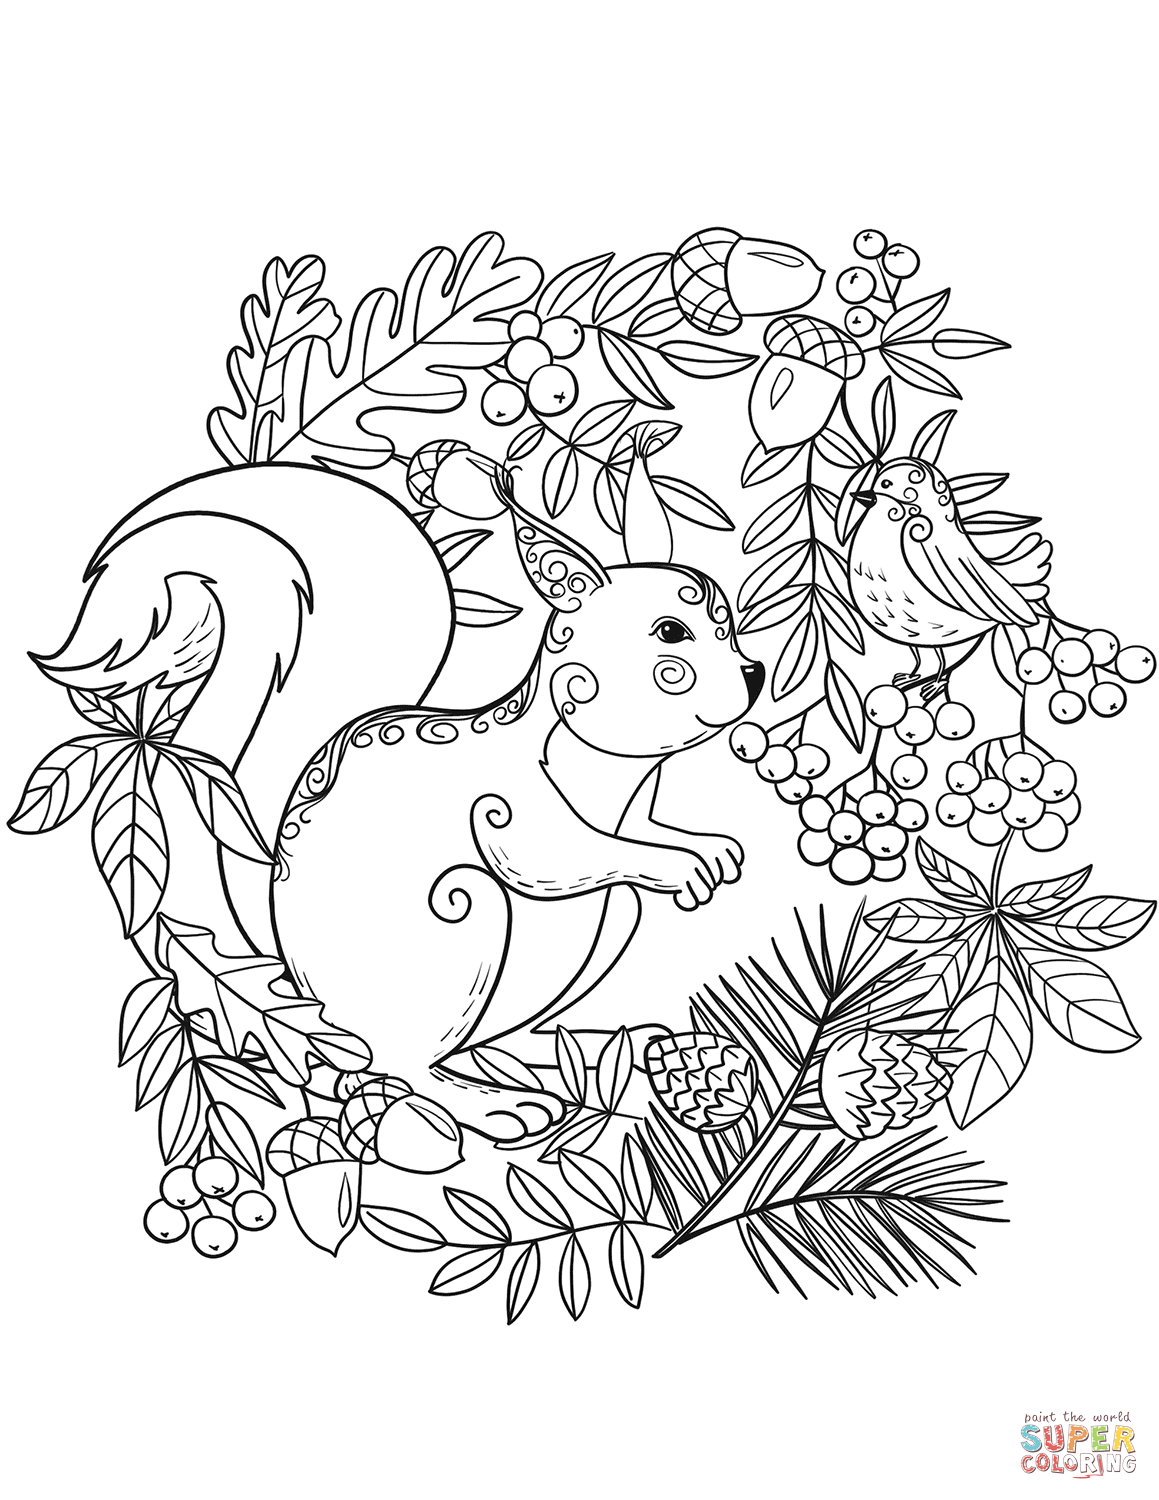 Squirrel And A Bird Coloring Page